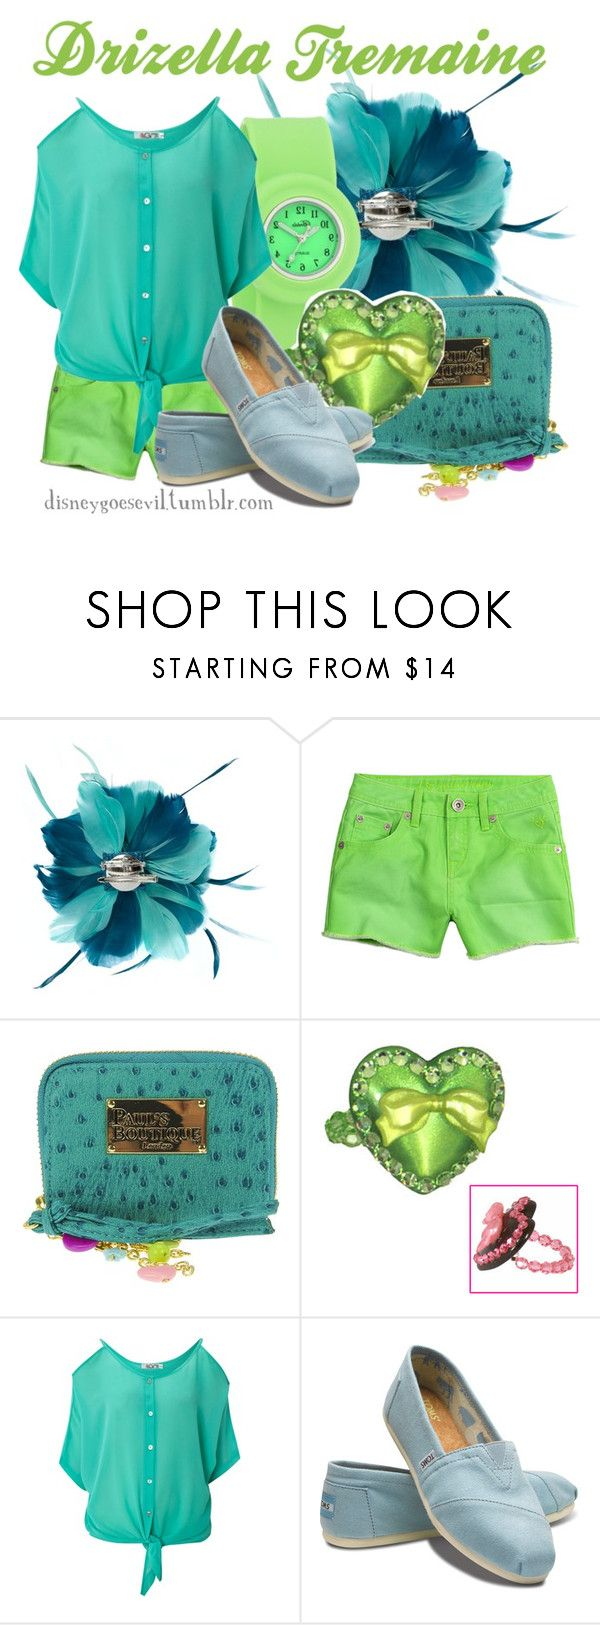 """Drizella Tremaine"" by disney-villains ❤ liked on Polyvore featuring Paul's Boutique, Breda, Tarina Tarantino, WalG and TOMS"